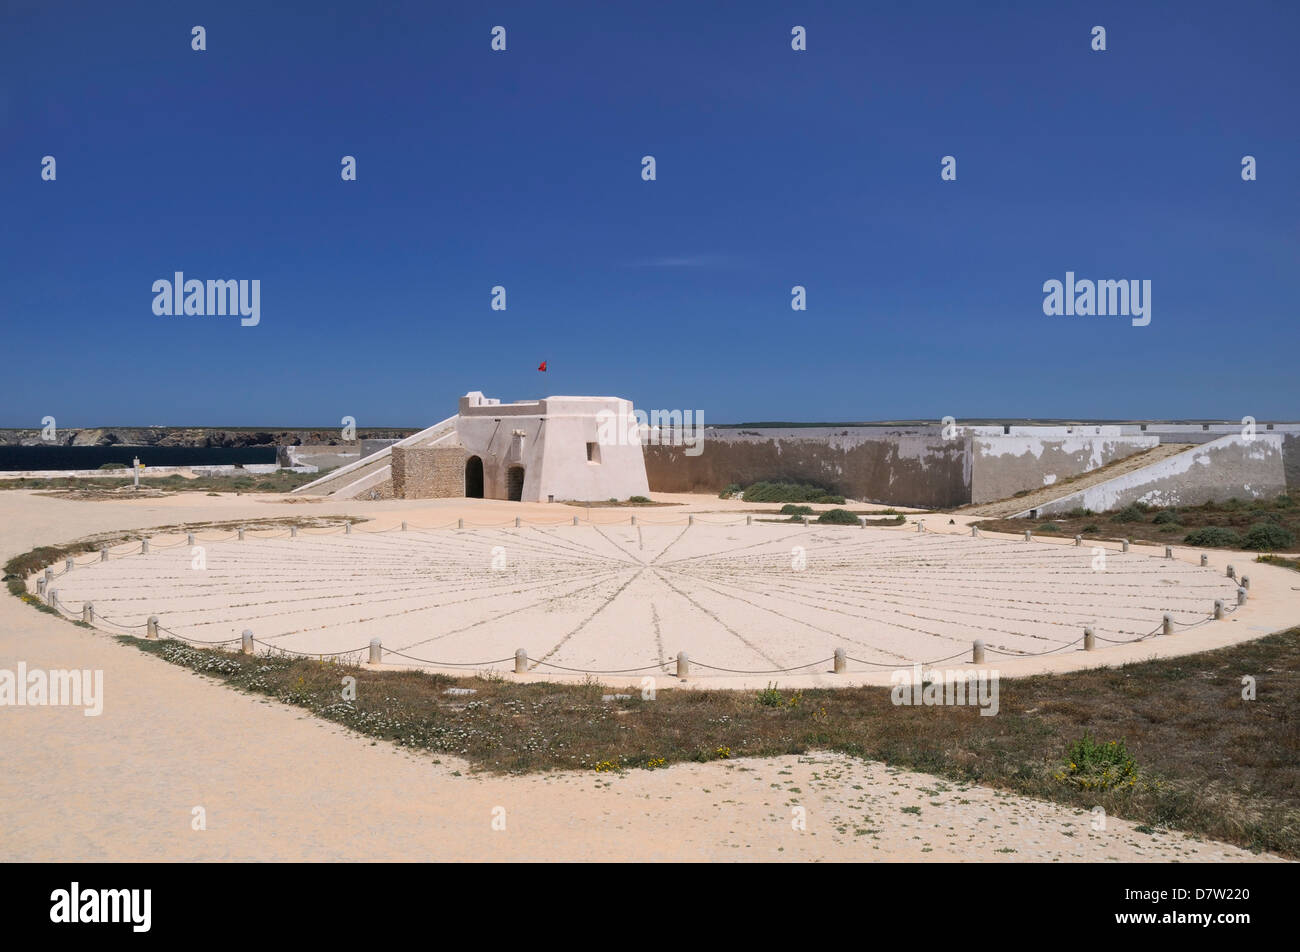 Compass Rose and entrance gateway at Sagres fort (Fortaleza de Sagres), Ponta de Sagres, Algarve, Portugal - Stock Image